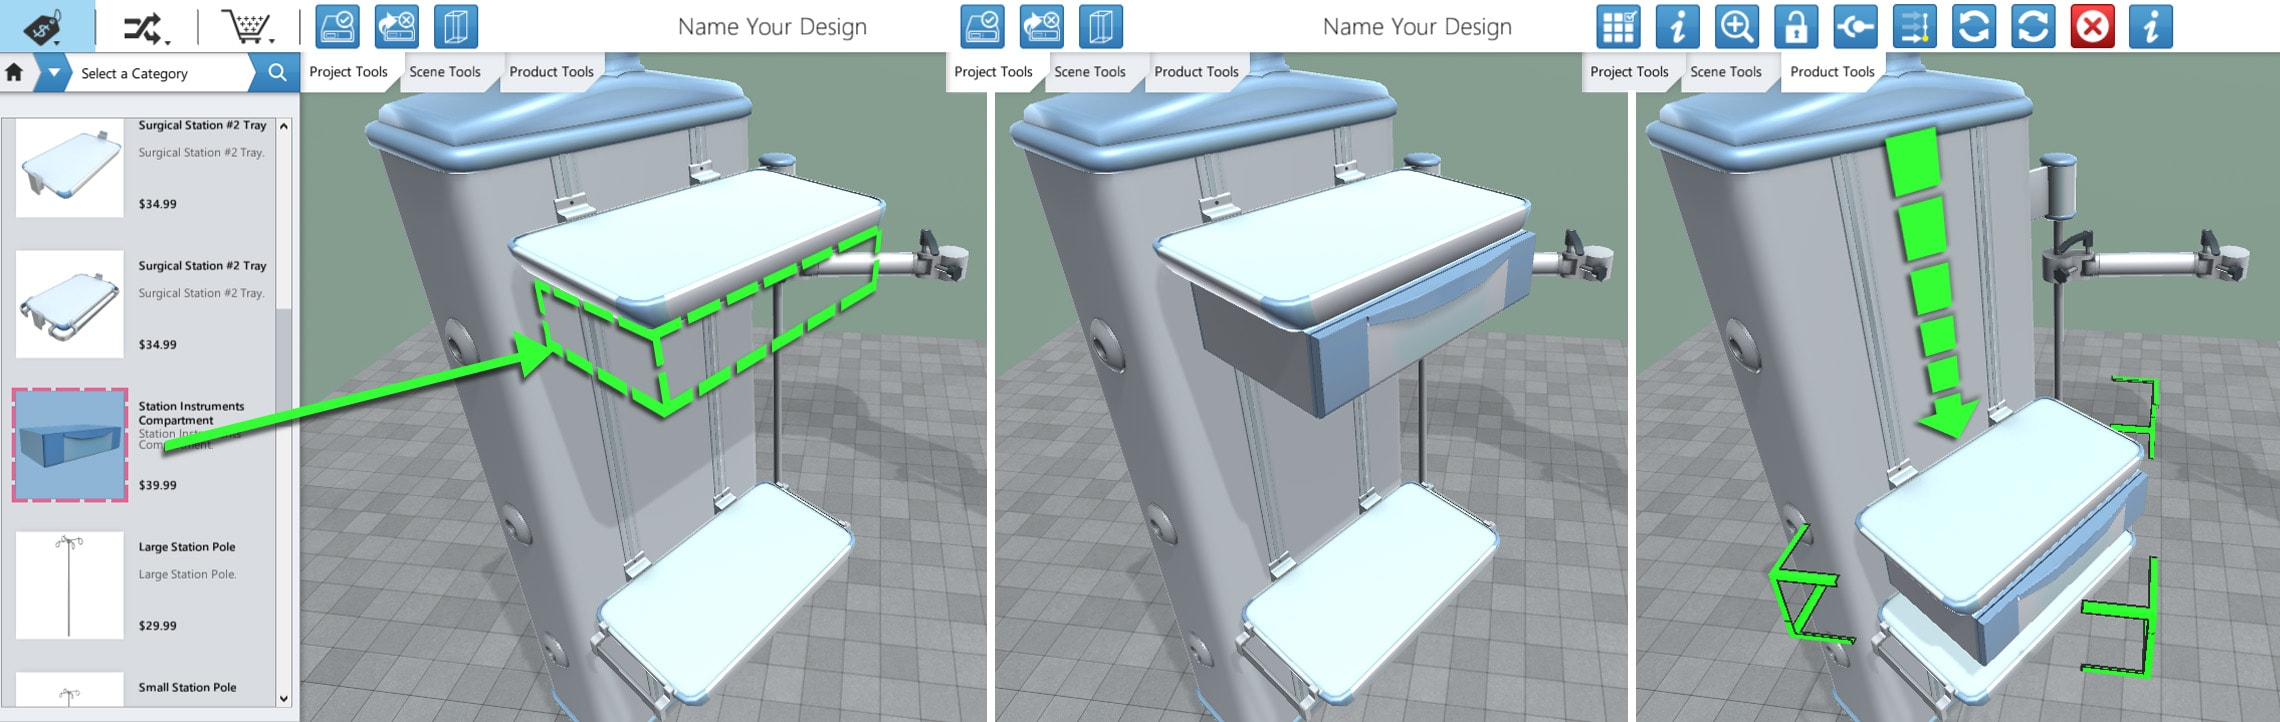 Drag and Drop Medical Configurator